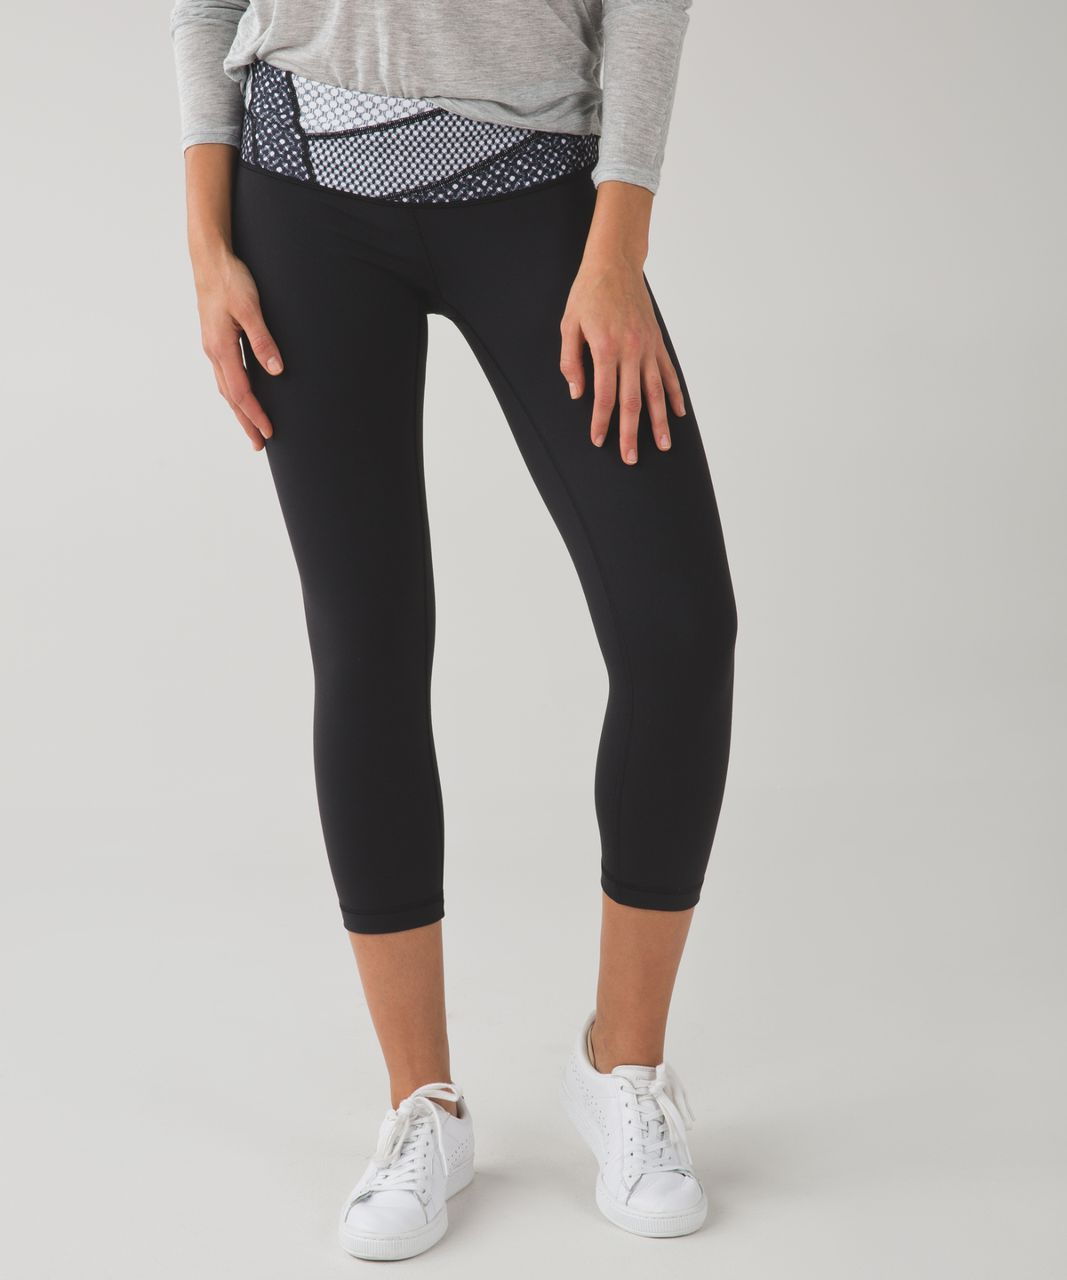 Lululemon Wunder Under Crop III *Full-On Luon - Black / Dottie Eyelet White Black / Millie Mesh White Black